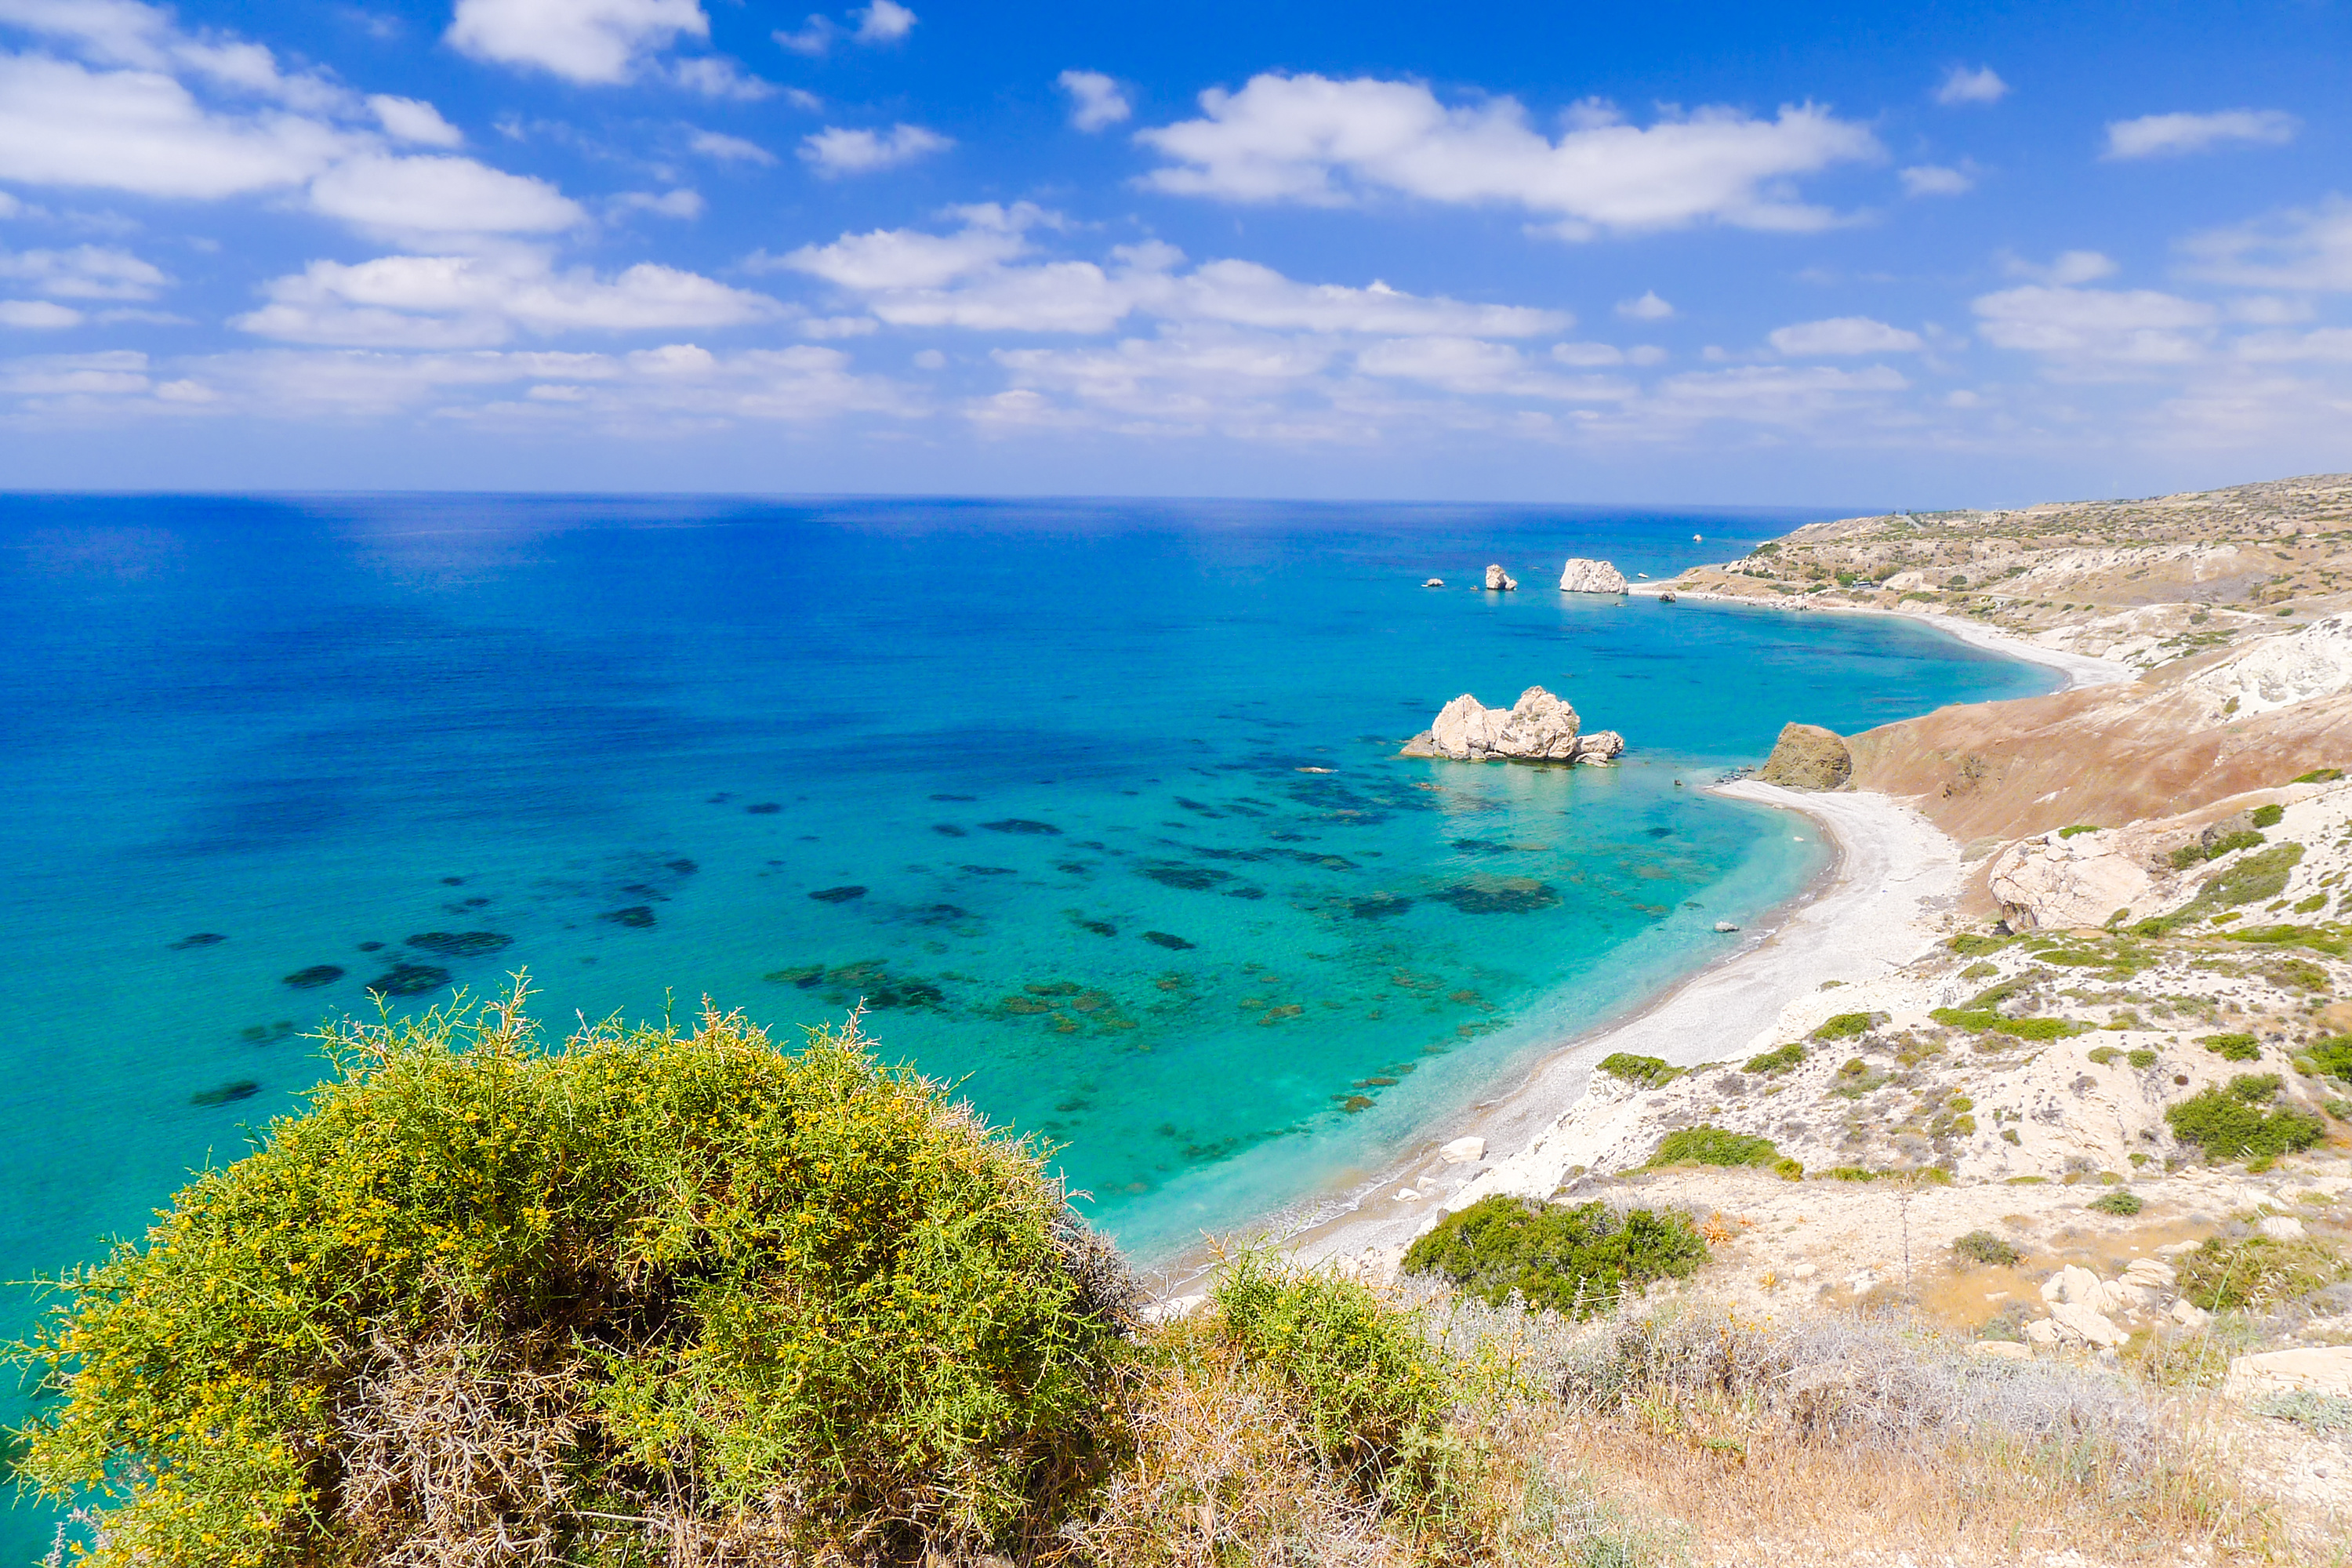 https://assets.eberhardt-travel.de/2017/Zypern/55499_Rock_of_Aphrodite_beautiful_beach_and_sea_bay_Cyprus_island_Original.jpg